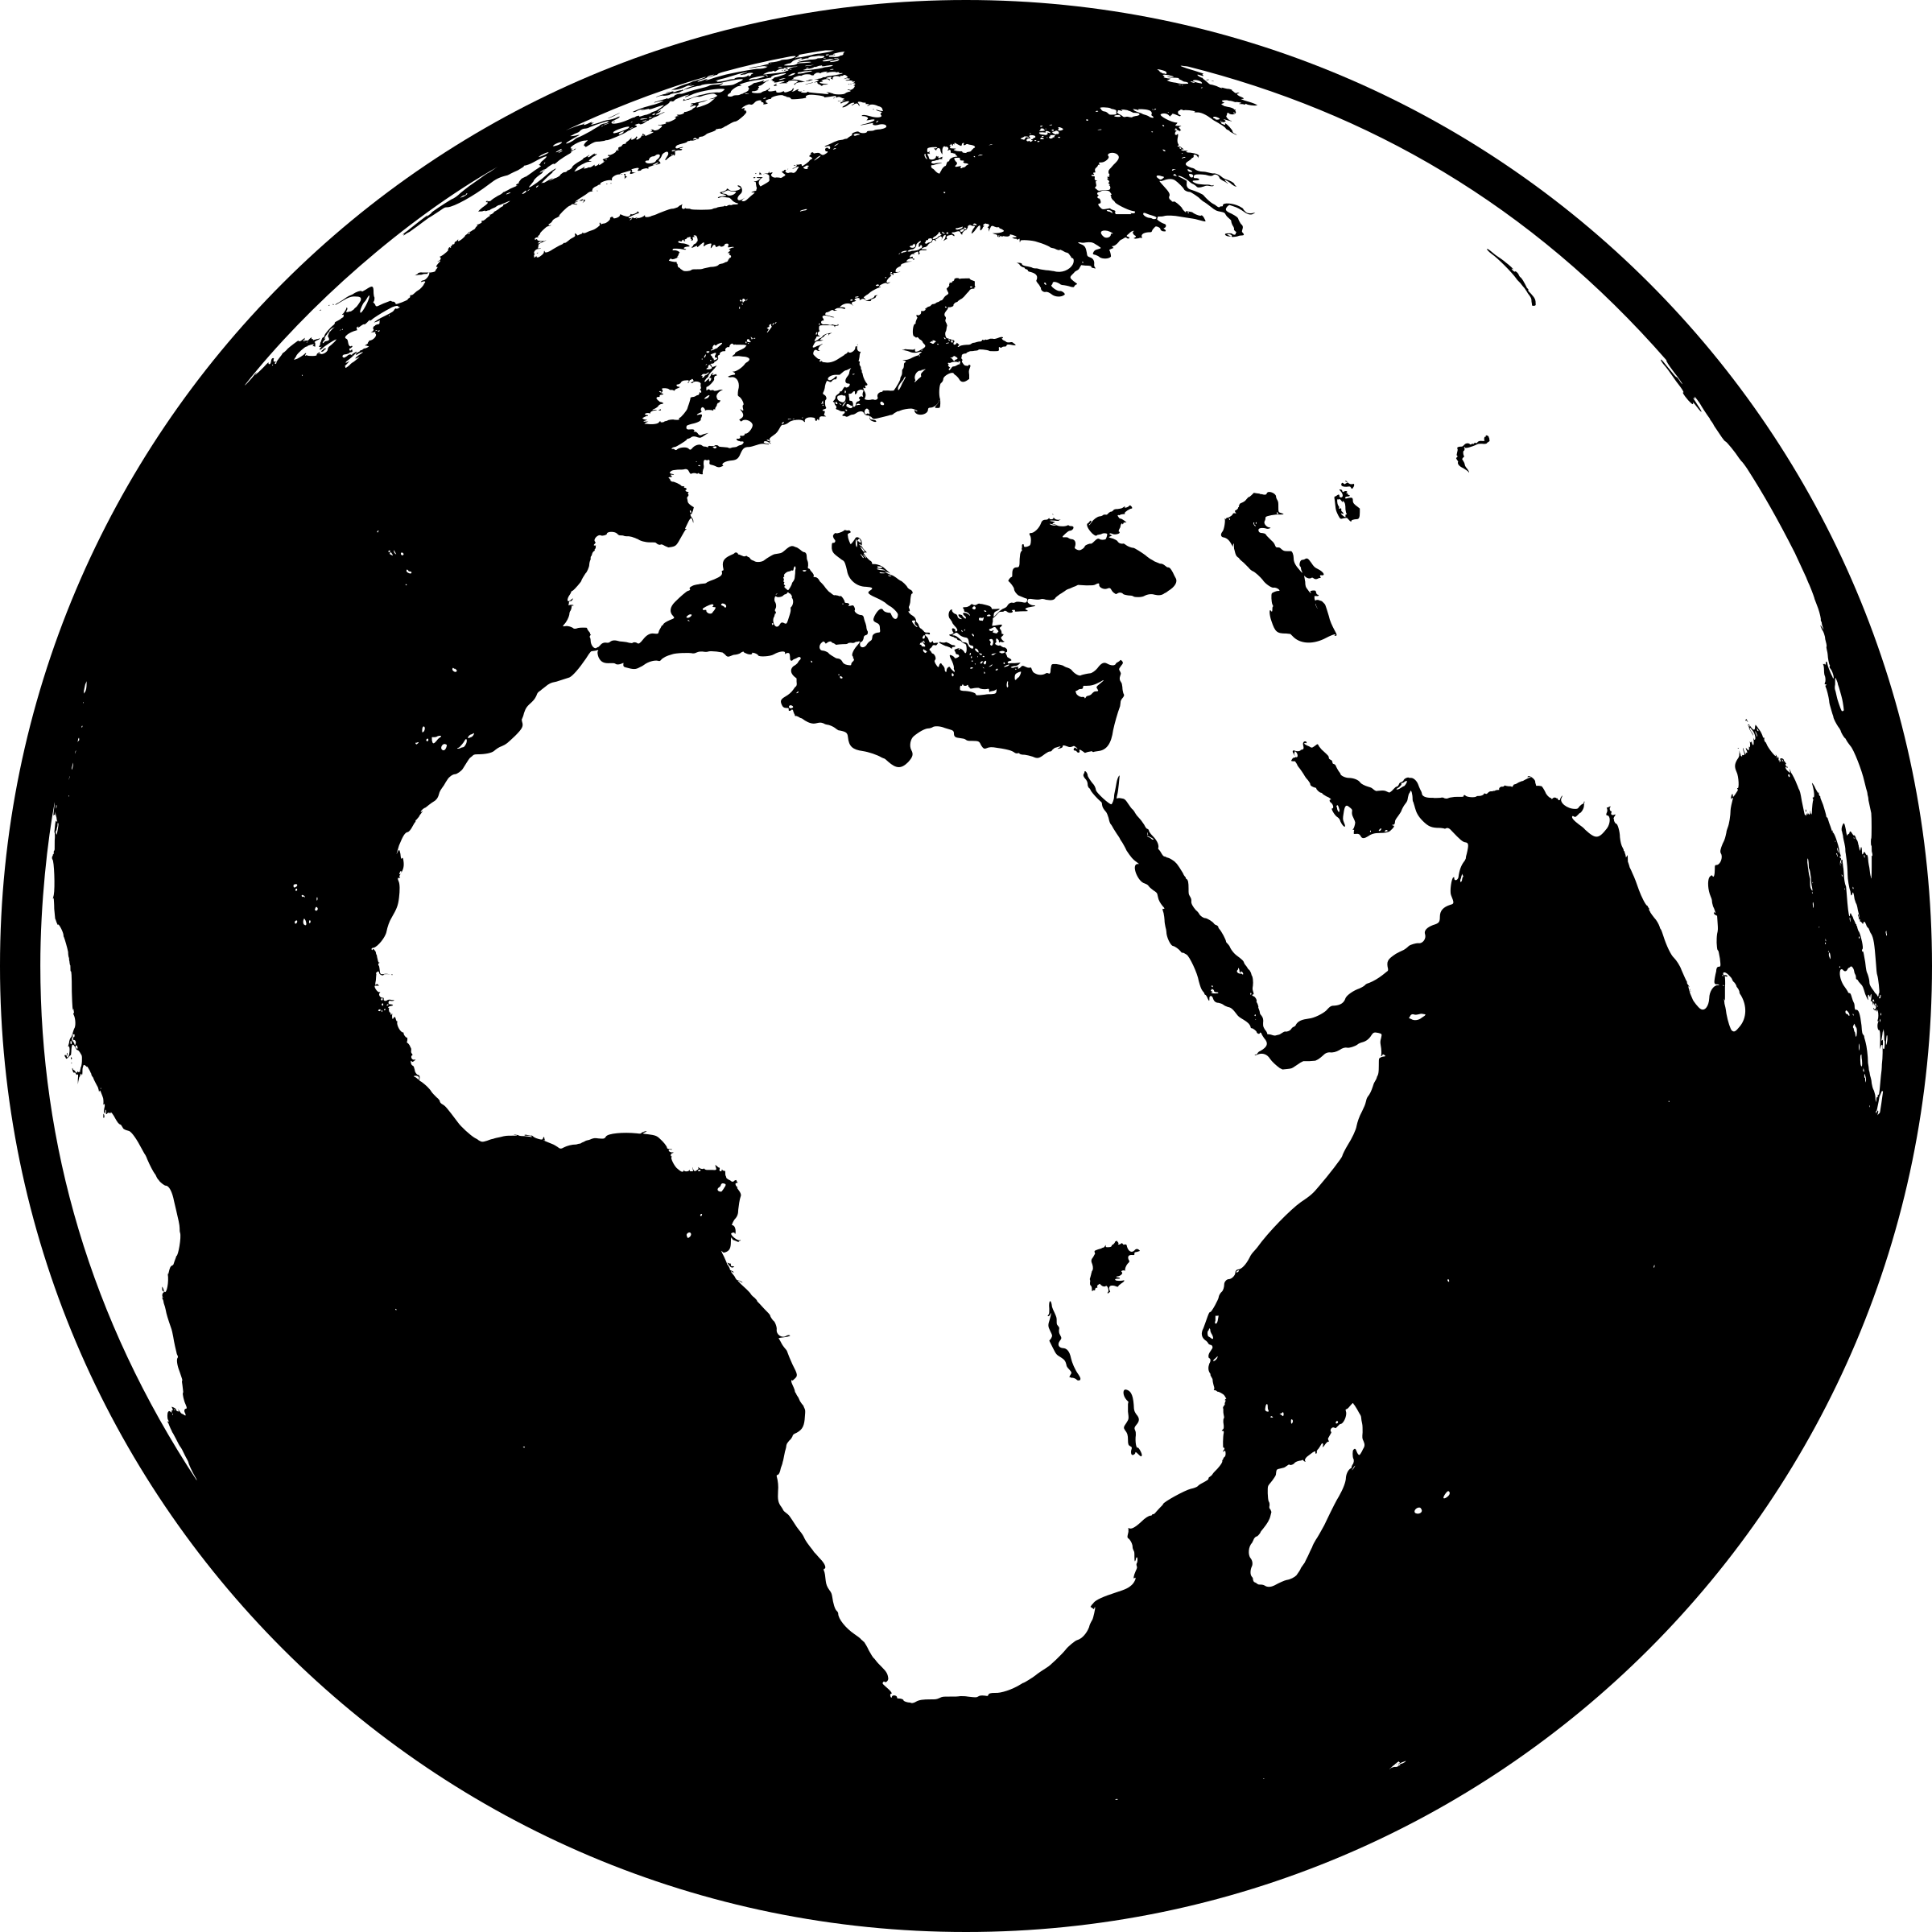 clip art free download Showing africa asia europe. Globe clipart black and white.